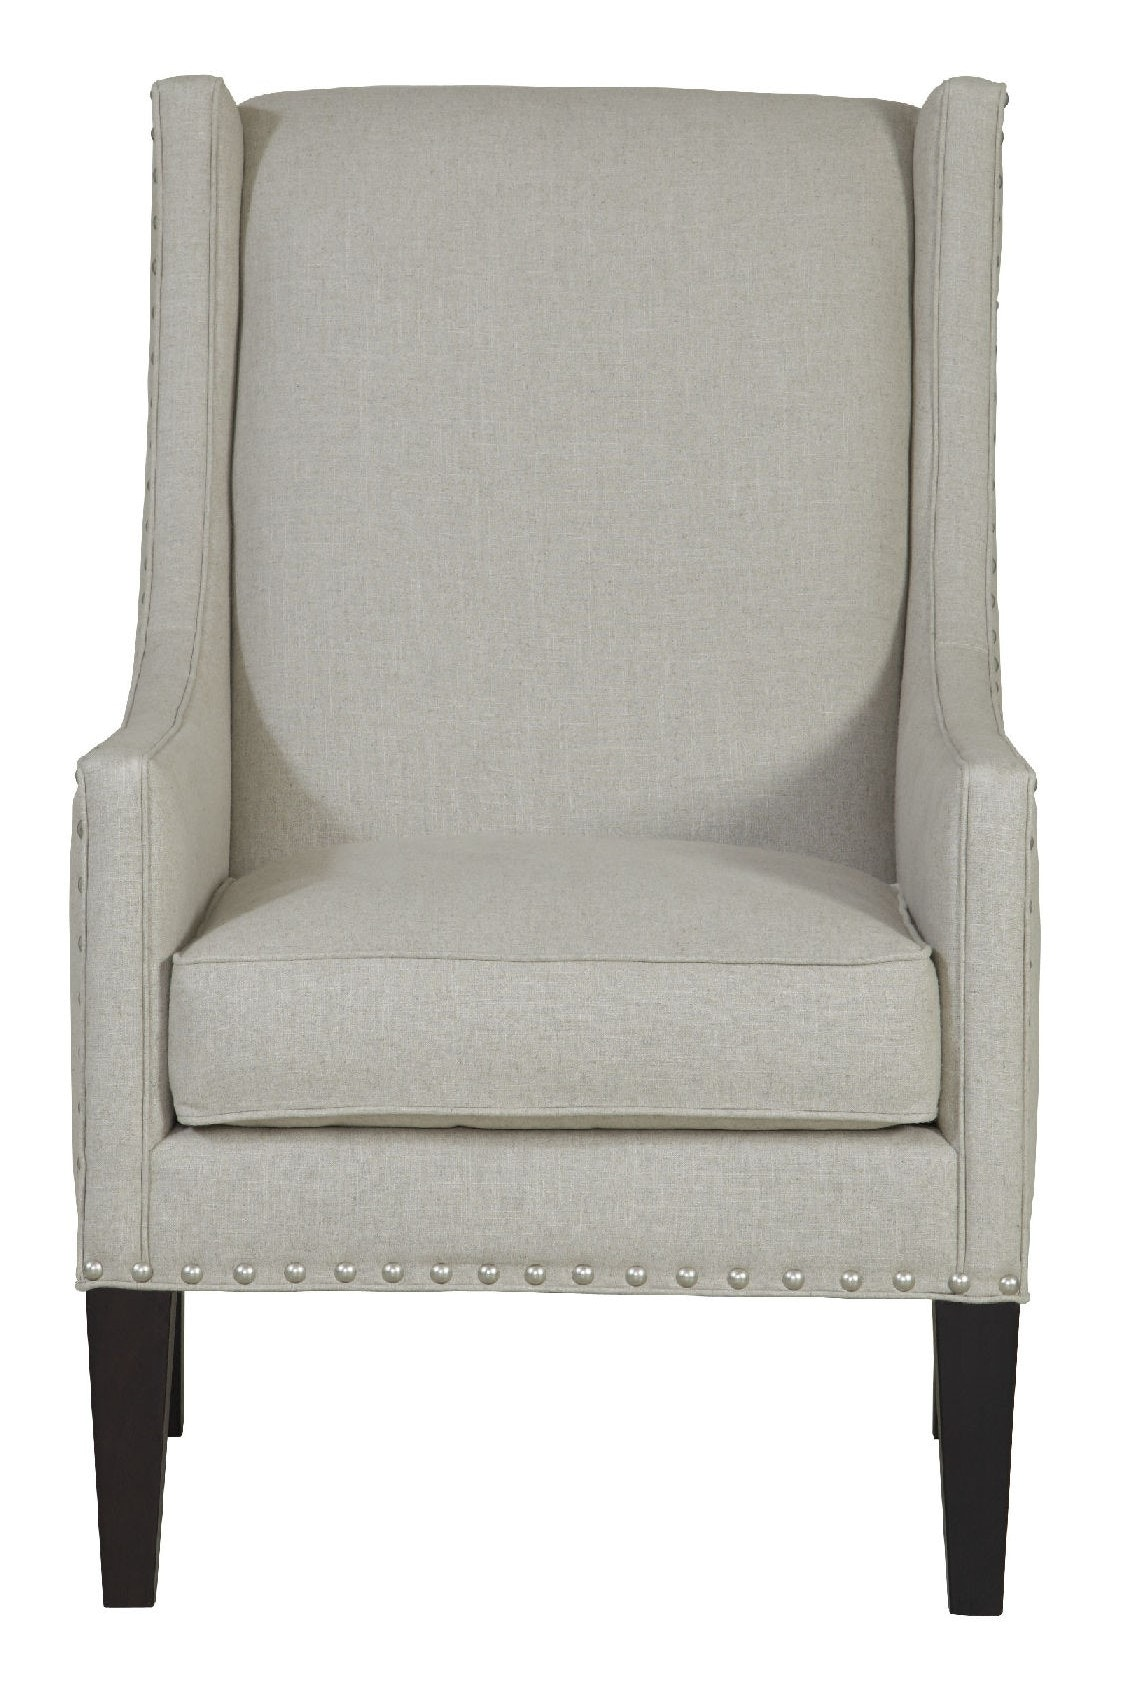 Stacy Select Carlson Chair 45003